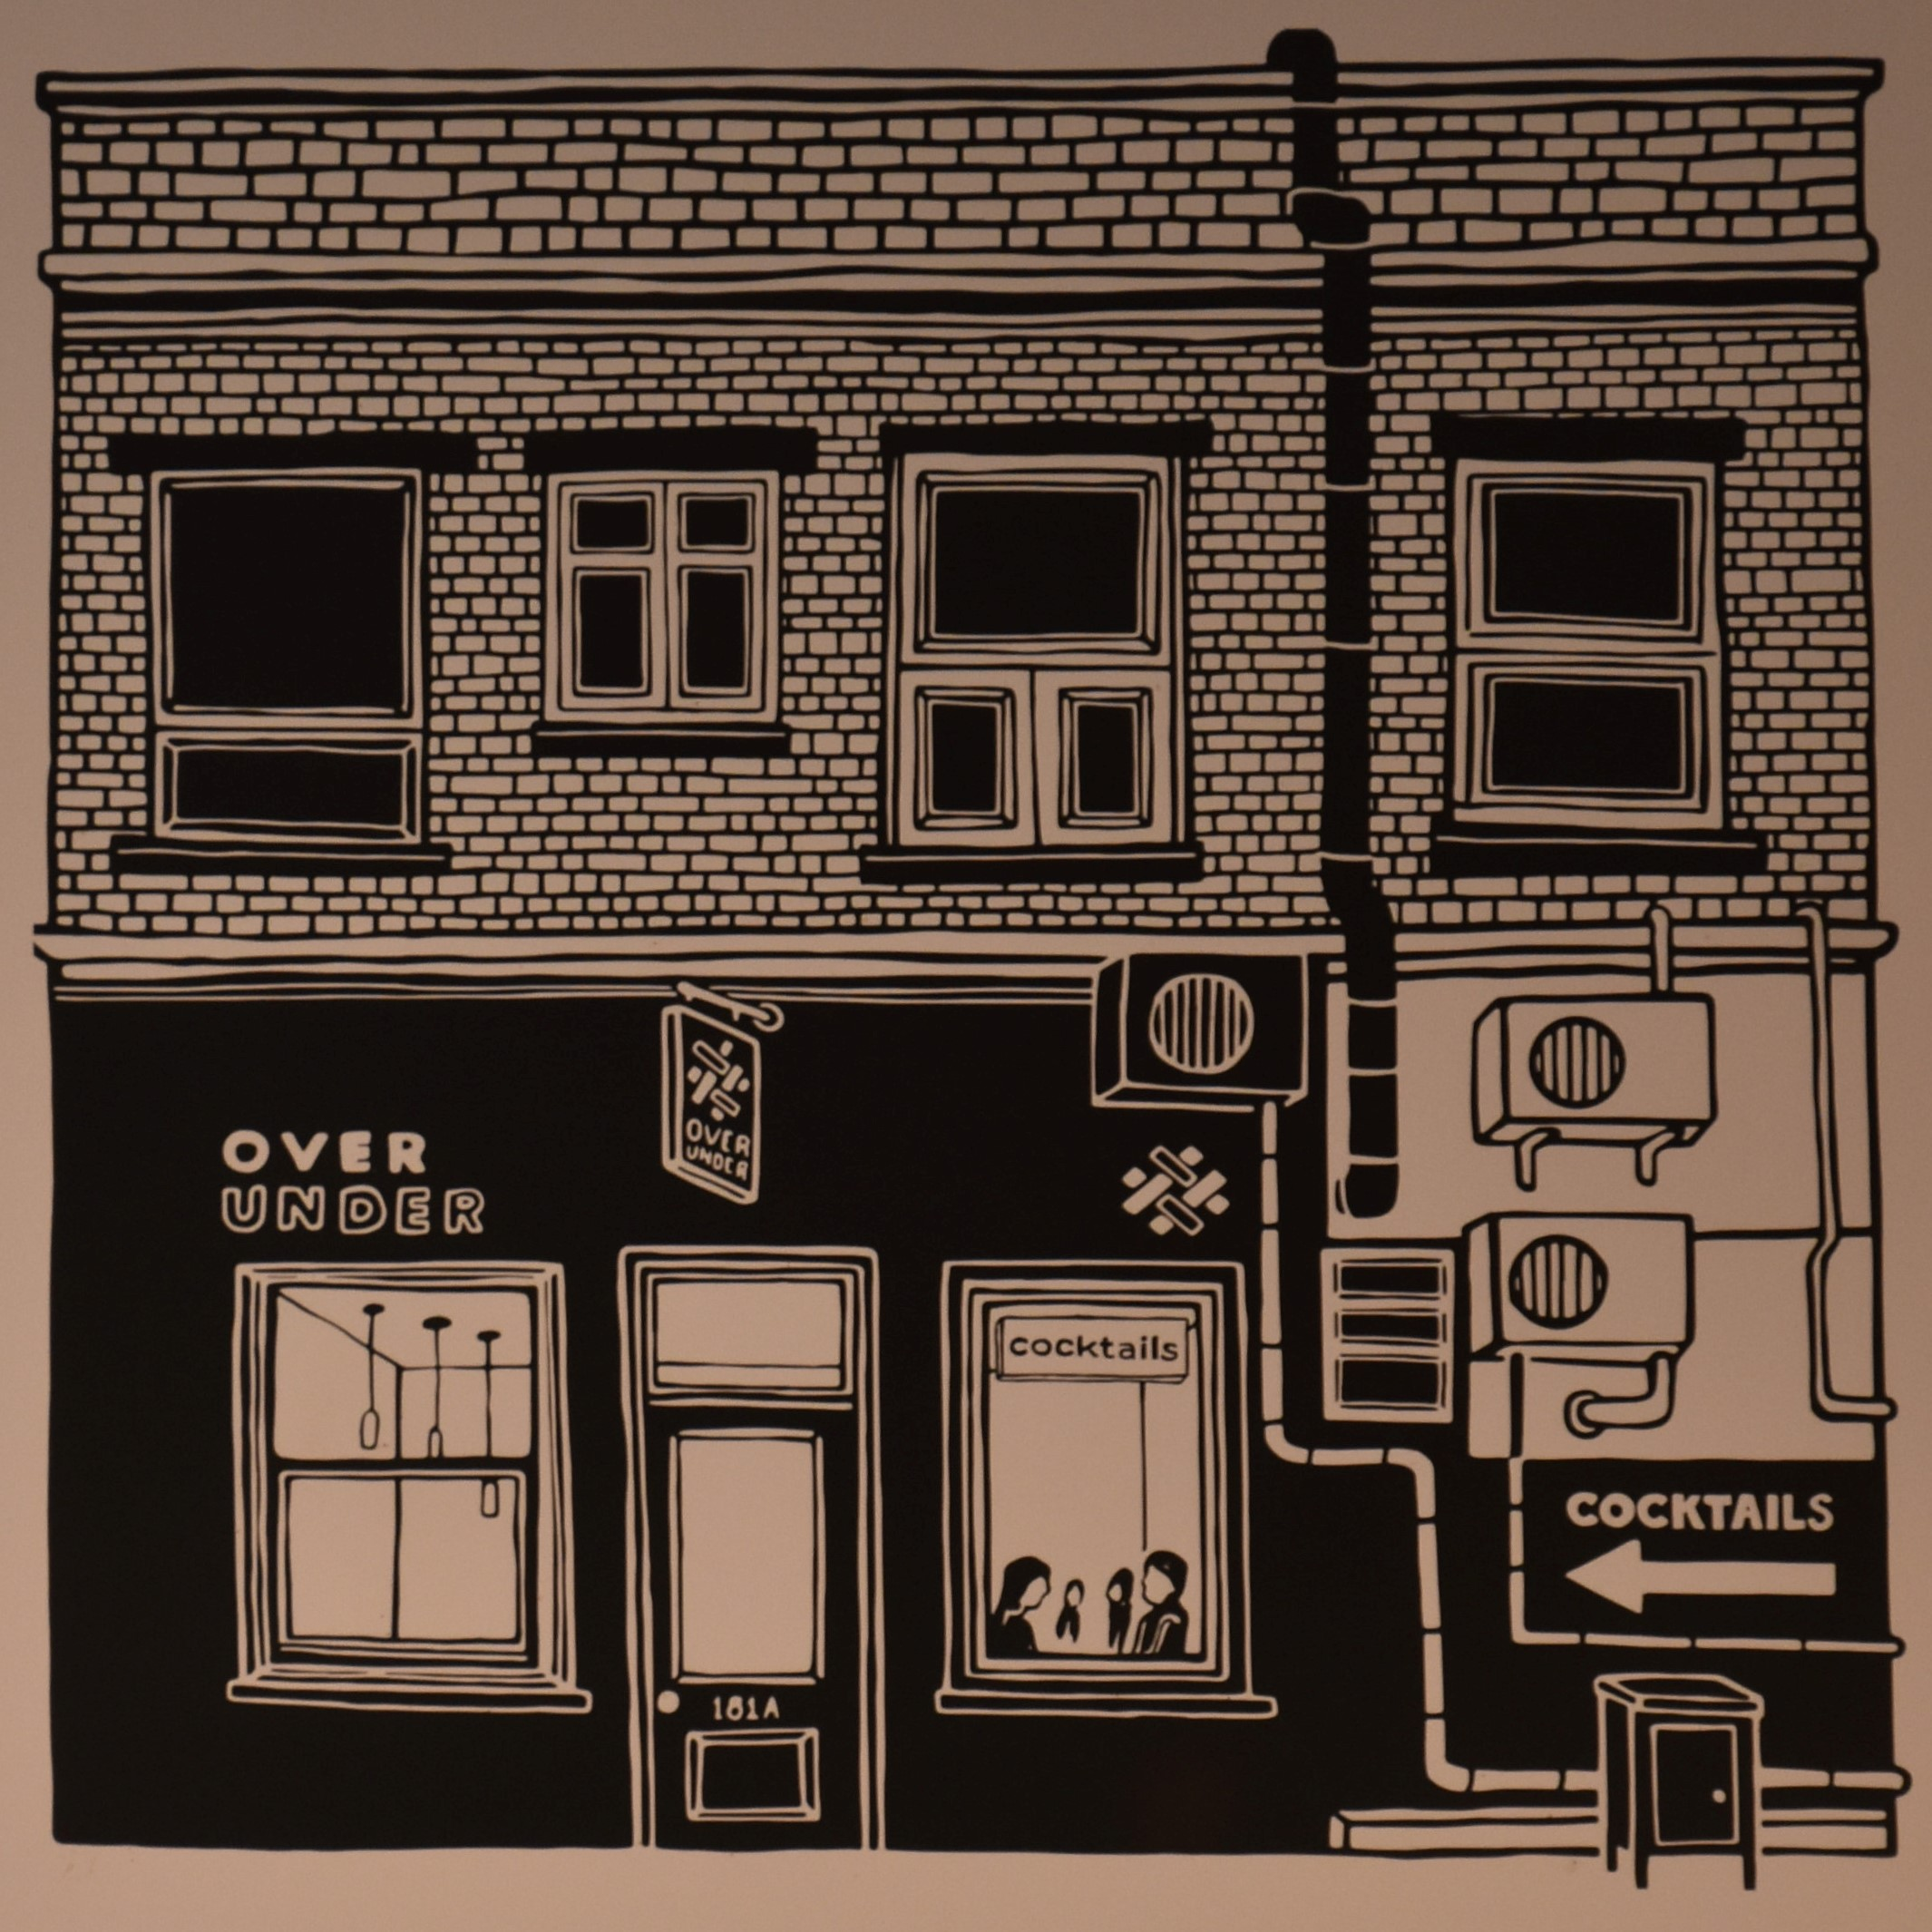 A black and white line drawing of Over Under Coffee, as seen from the street, which is on the menu boards hanging behind the counter.